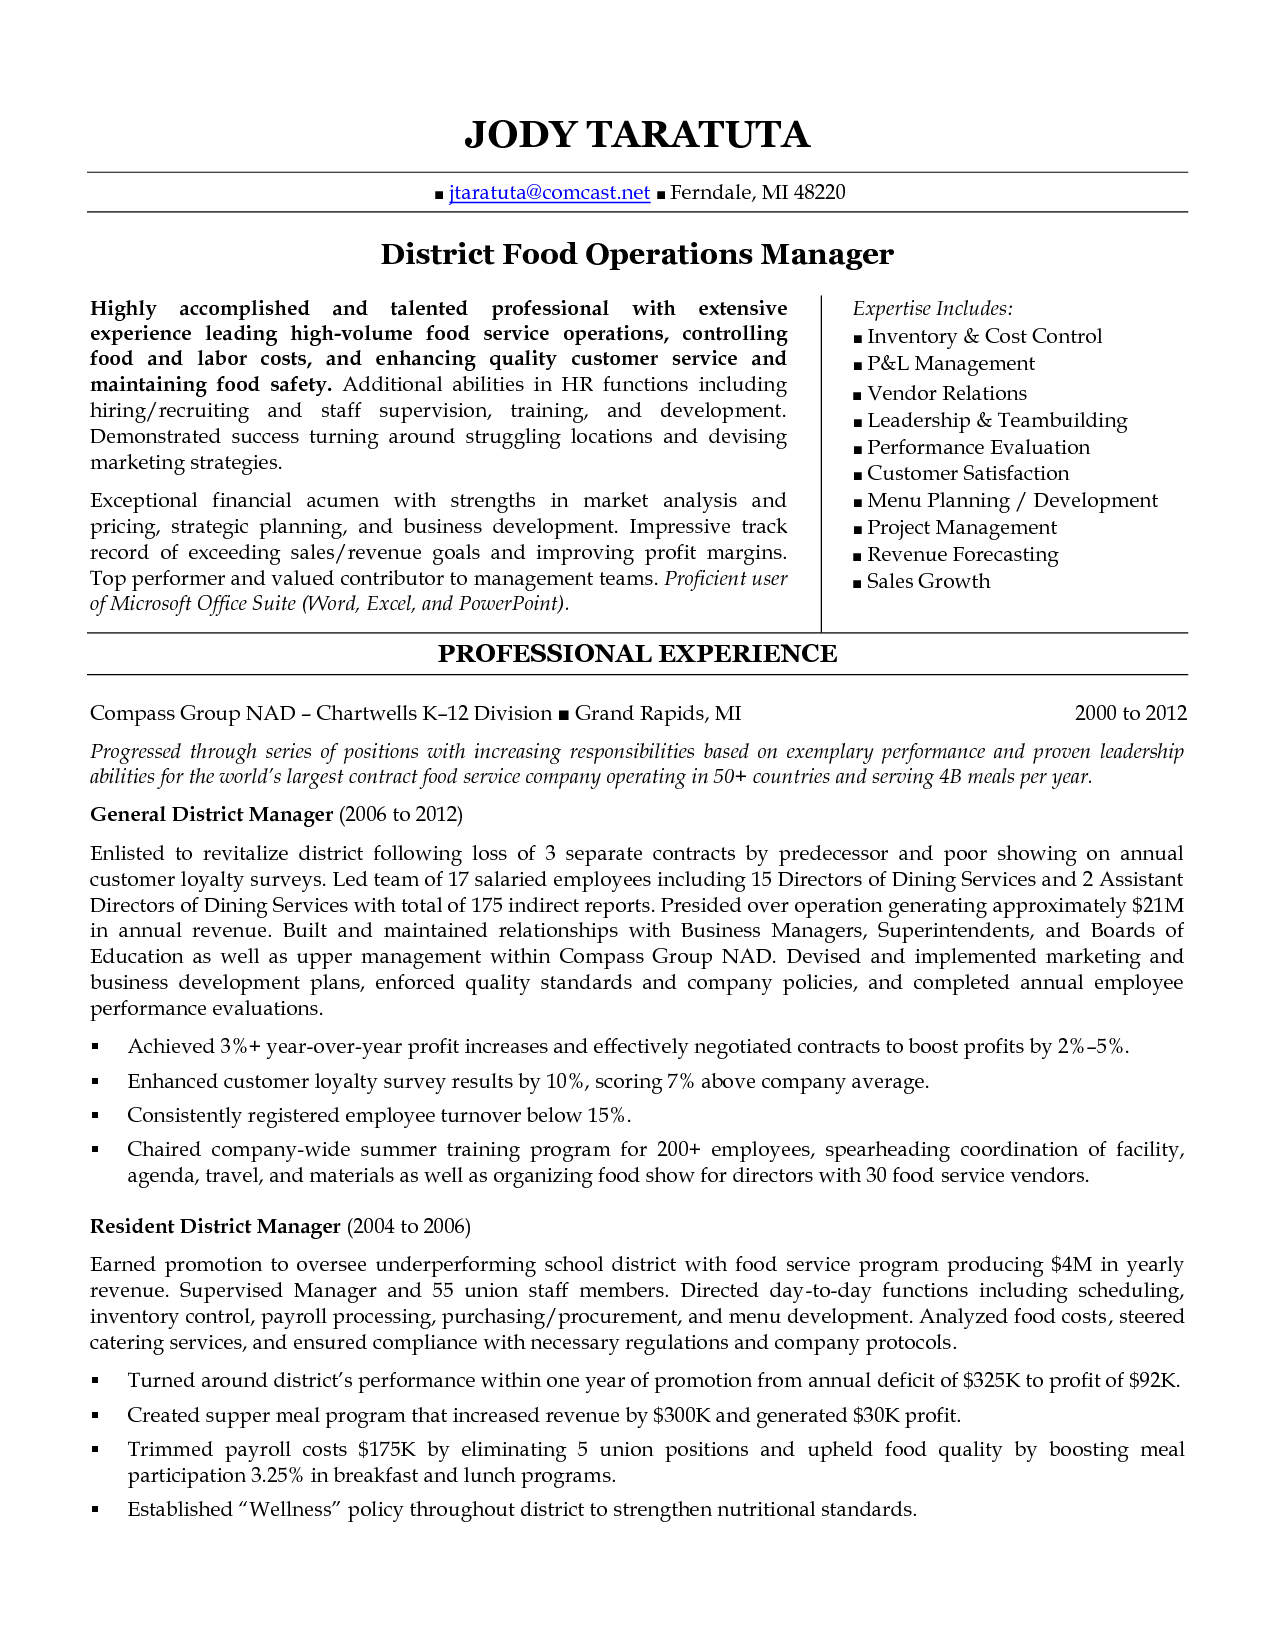 Lunch Supervisor Resume Sample District Manager Resume District Food Operations Manager